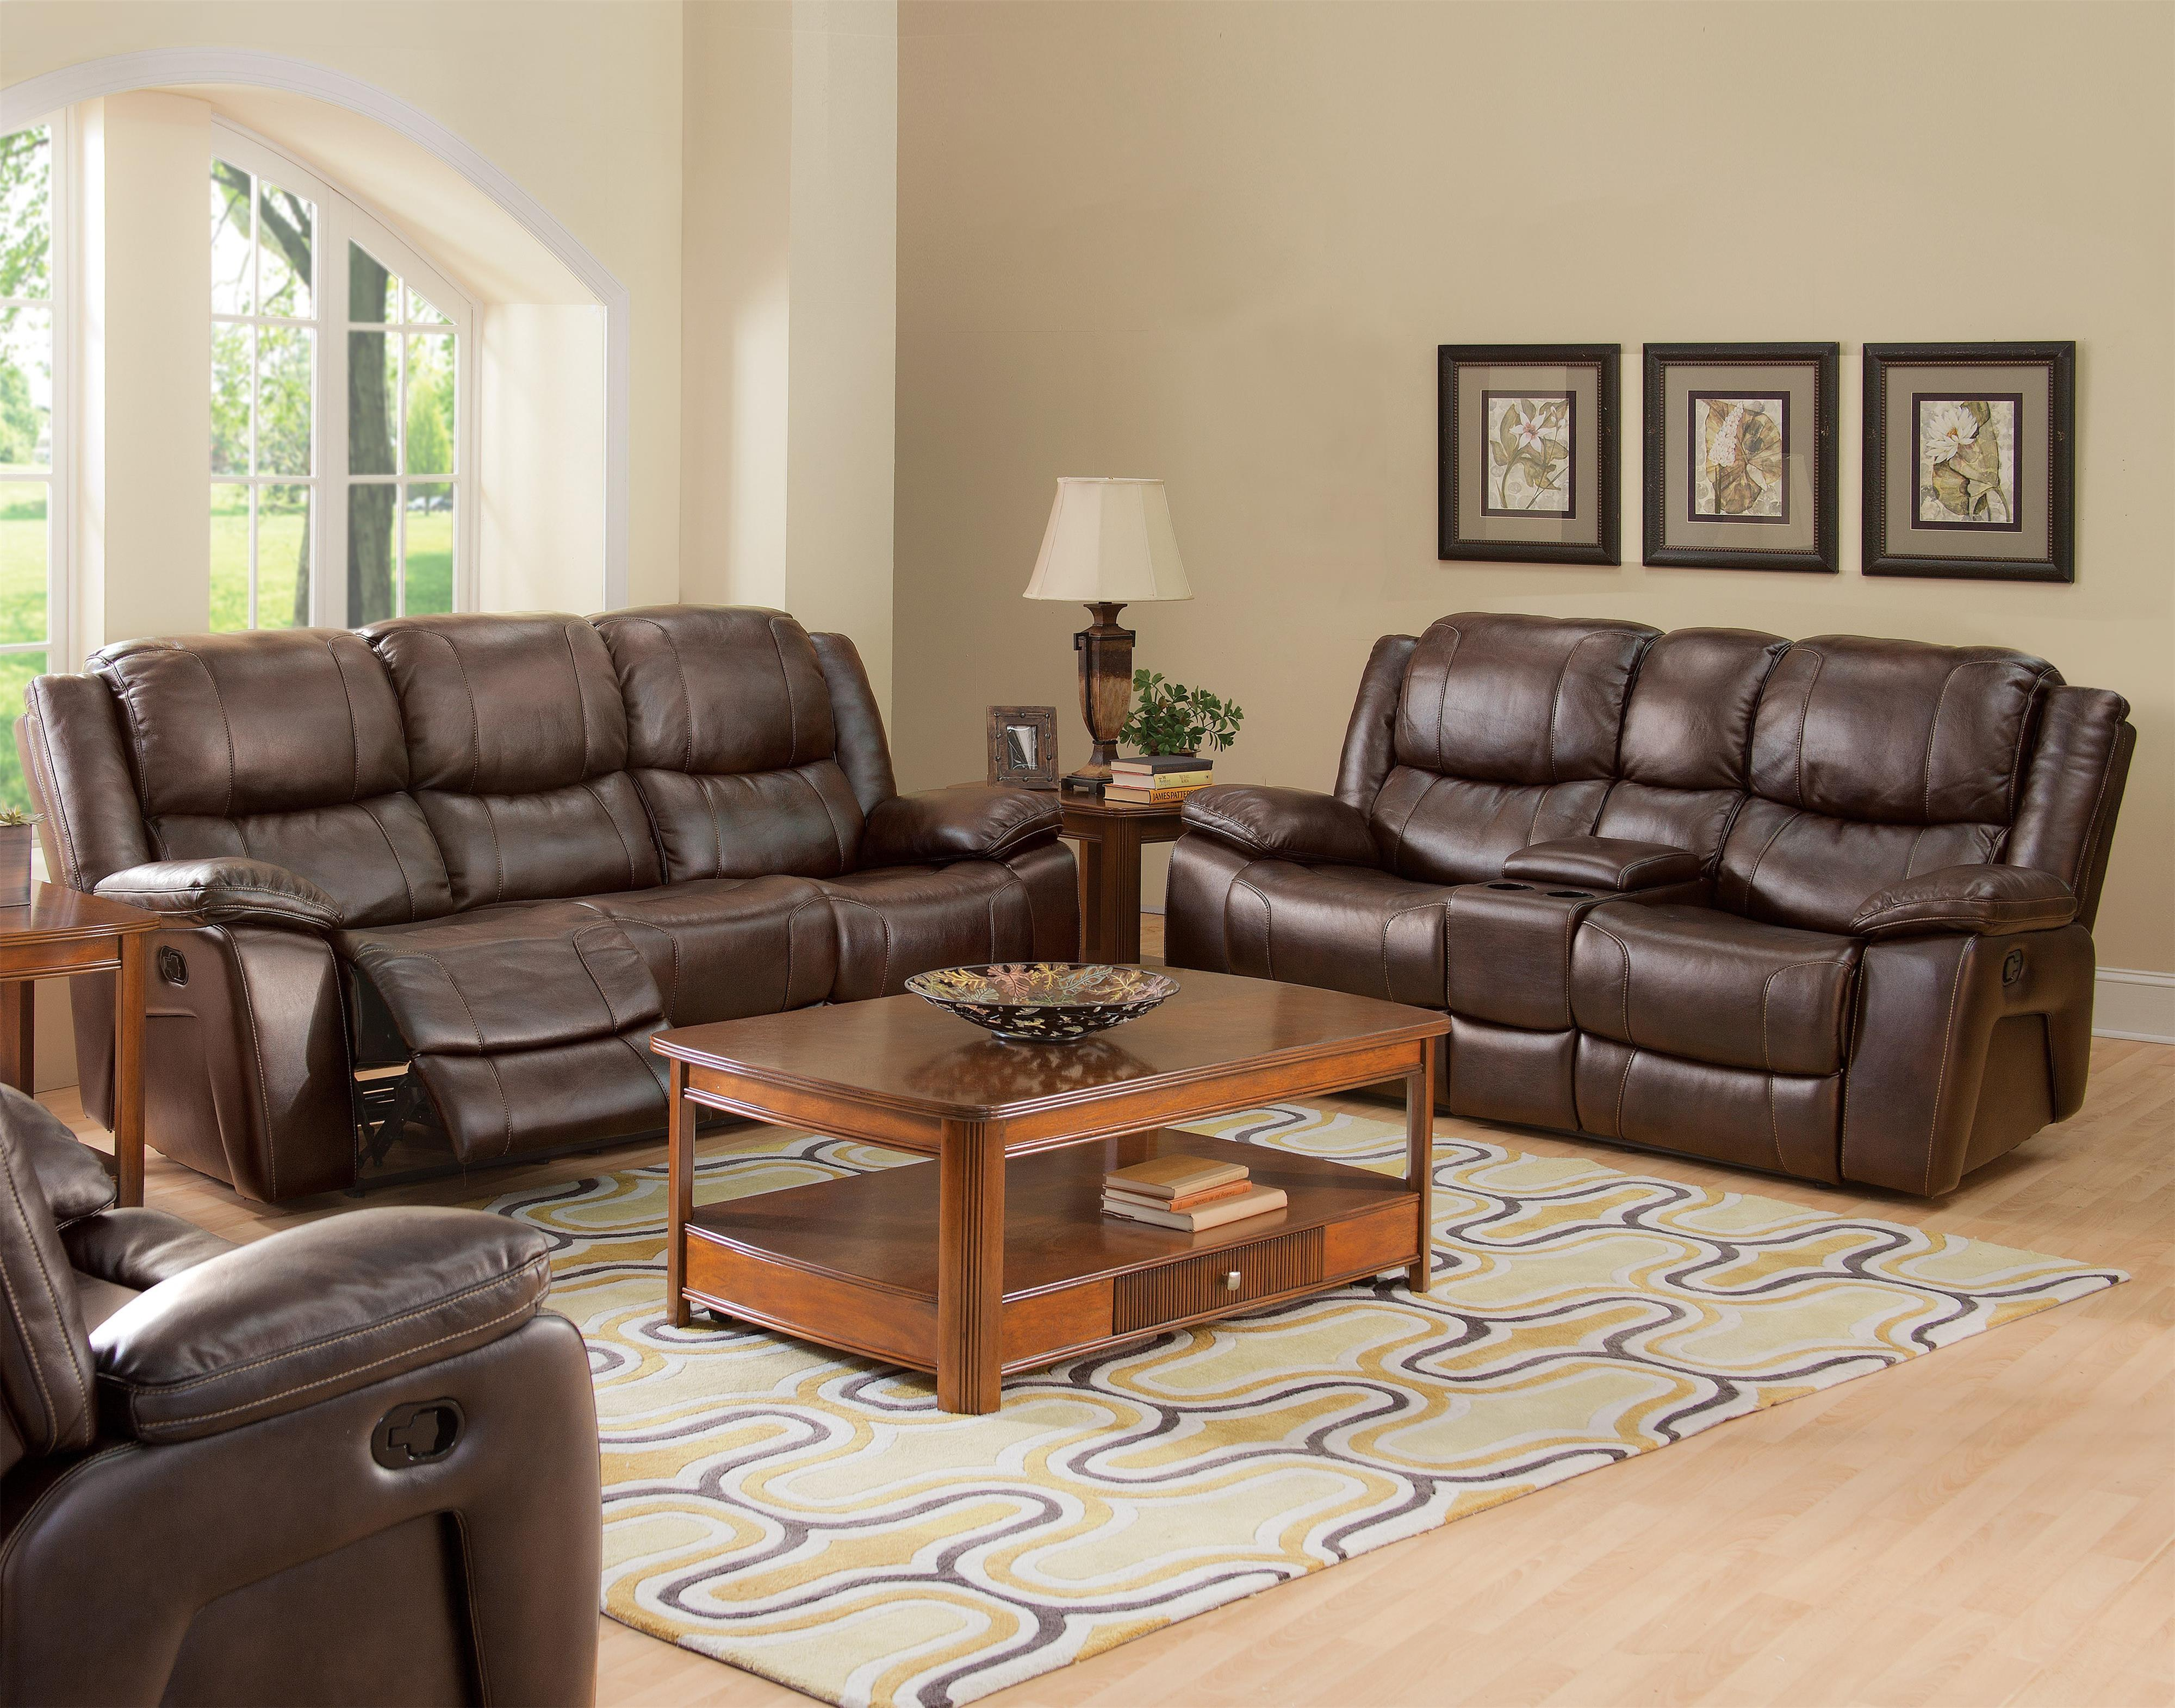 New Classic Kenwood Casual Reclining Living Room Group - Item Number: 245 Reclining Living Room Group 1